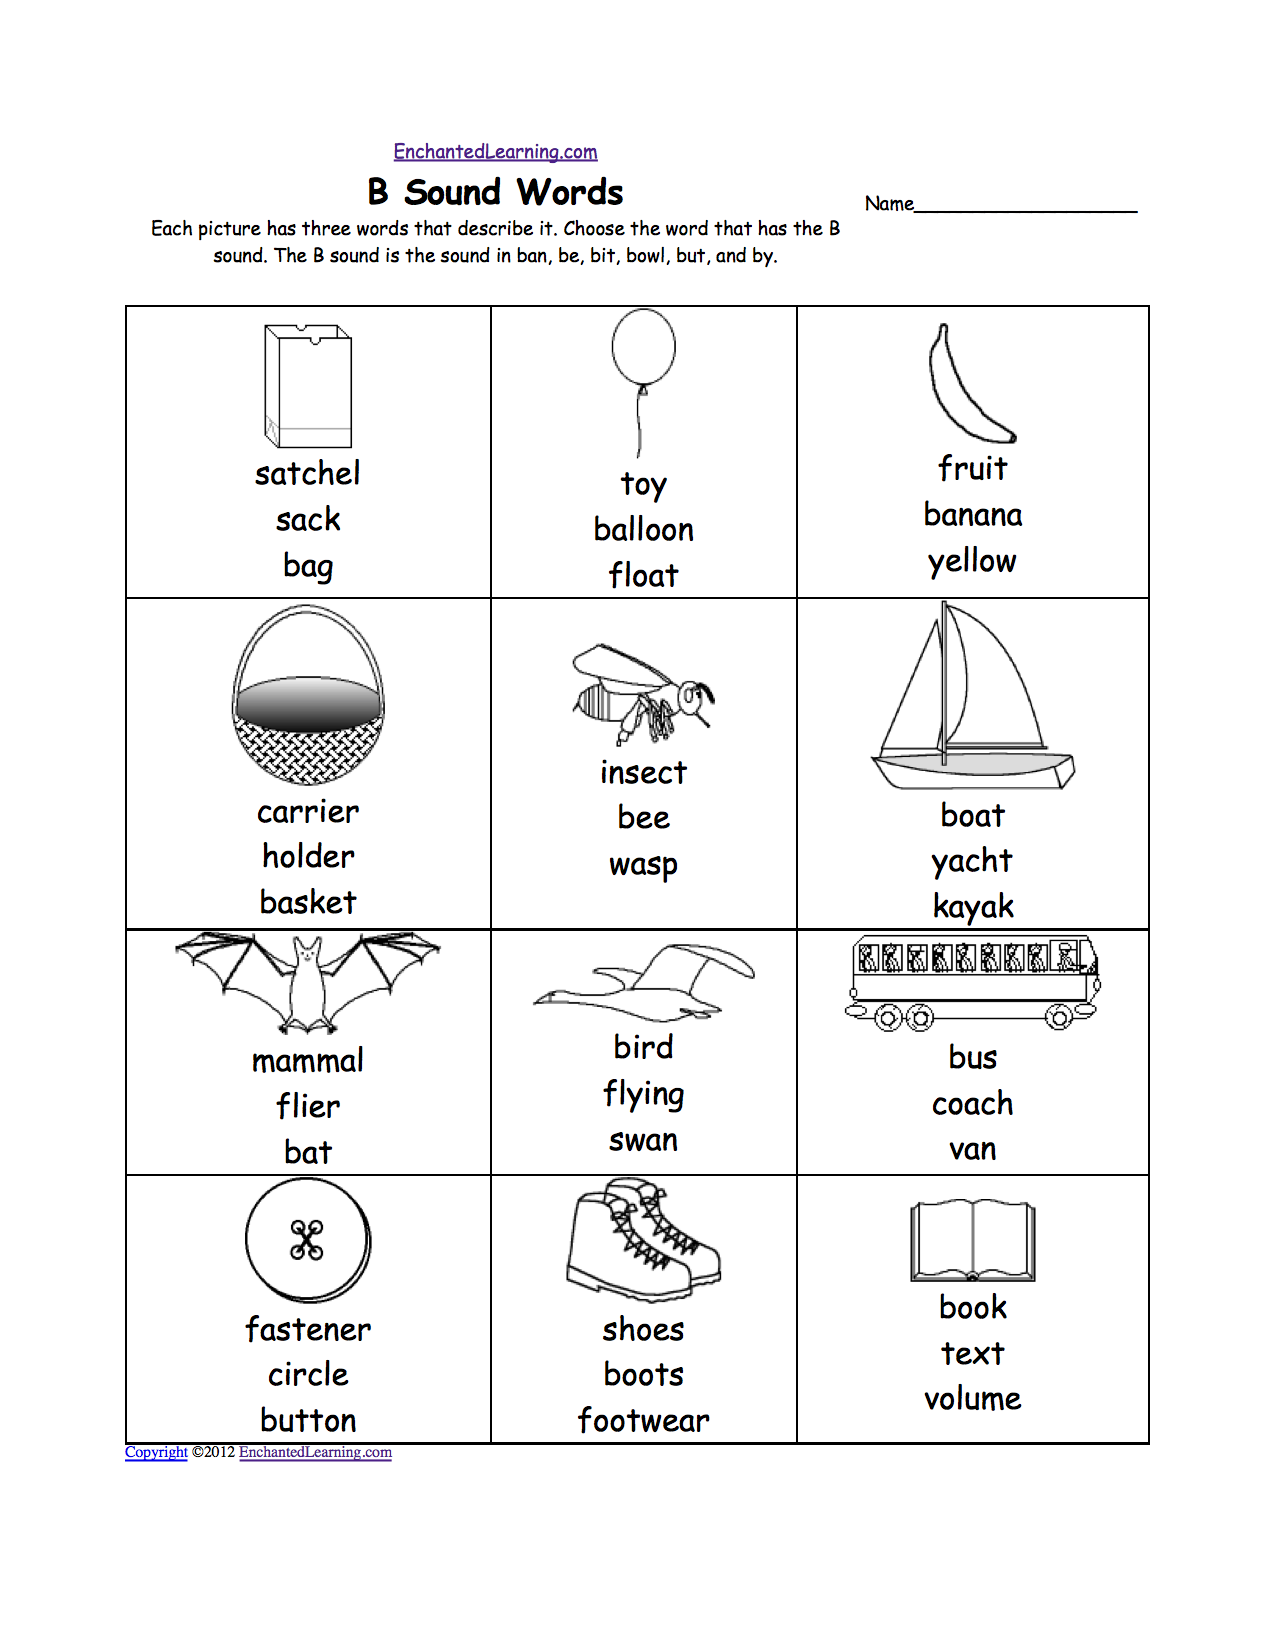 Aldiablosus  Personable Phonics Worksheets Multiple Choice Worksheets To Print  With Fascinating Quotbquot Sound Phonics Worksheet Multiple Choice Each Picture Has Three Words That Describe It Choose The Word That Has A Quotbquot Sound The Quotbquot Sound Is The Sound  With Astounding Number Line Worksheets For St Grade Also Th Grade Sequencing Worksheets In Addition Creation Story Worksheets And Contraction Worksheets Th Grade As Well As Fraction Worksheet Grade  Additionally Sequencing Worksheets For Th Grade From Enchantedlearningcom With Aldiablosus  Fascinating Phonics Worksheets Multiple Choice Worksheets To Print  With Astounding Quotbquot Sound Phonics Worksheet Multiple Choice Each Picture Has Three Words That Describe It Choose The Word That Has A Quotbquot Sound The Quotbquot Sound Is The Sound  And Personable Number Line Worksheets For St Grade Also Th Grade Sequencing Worksheets In Addition Creation Story Worksheets From Enchantedlearningcom